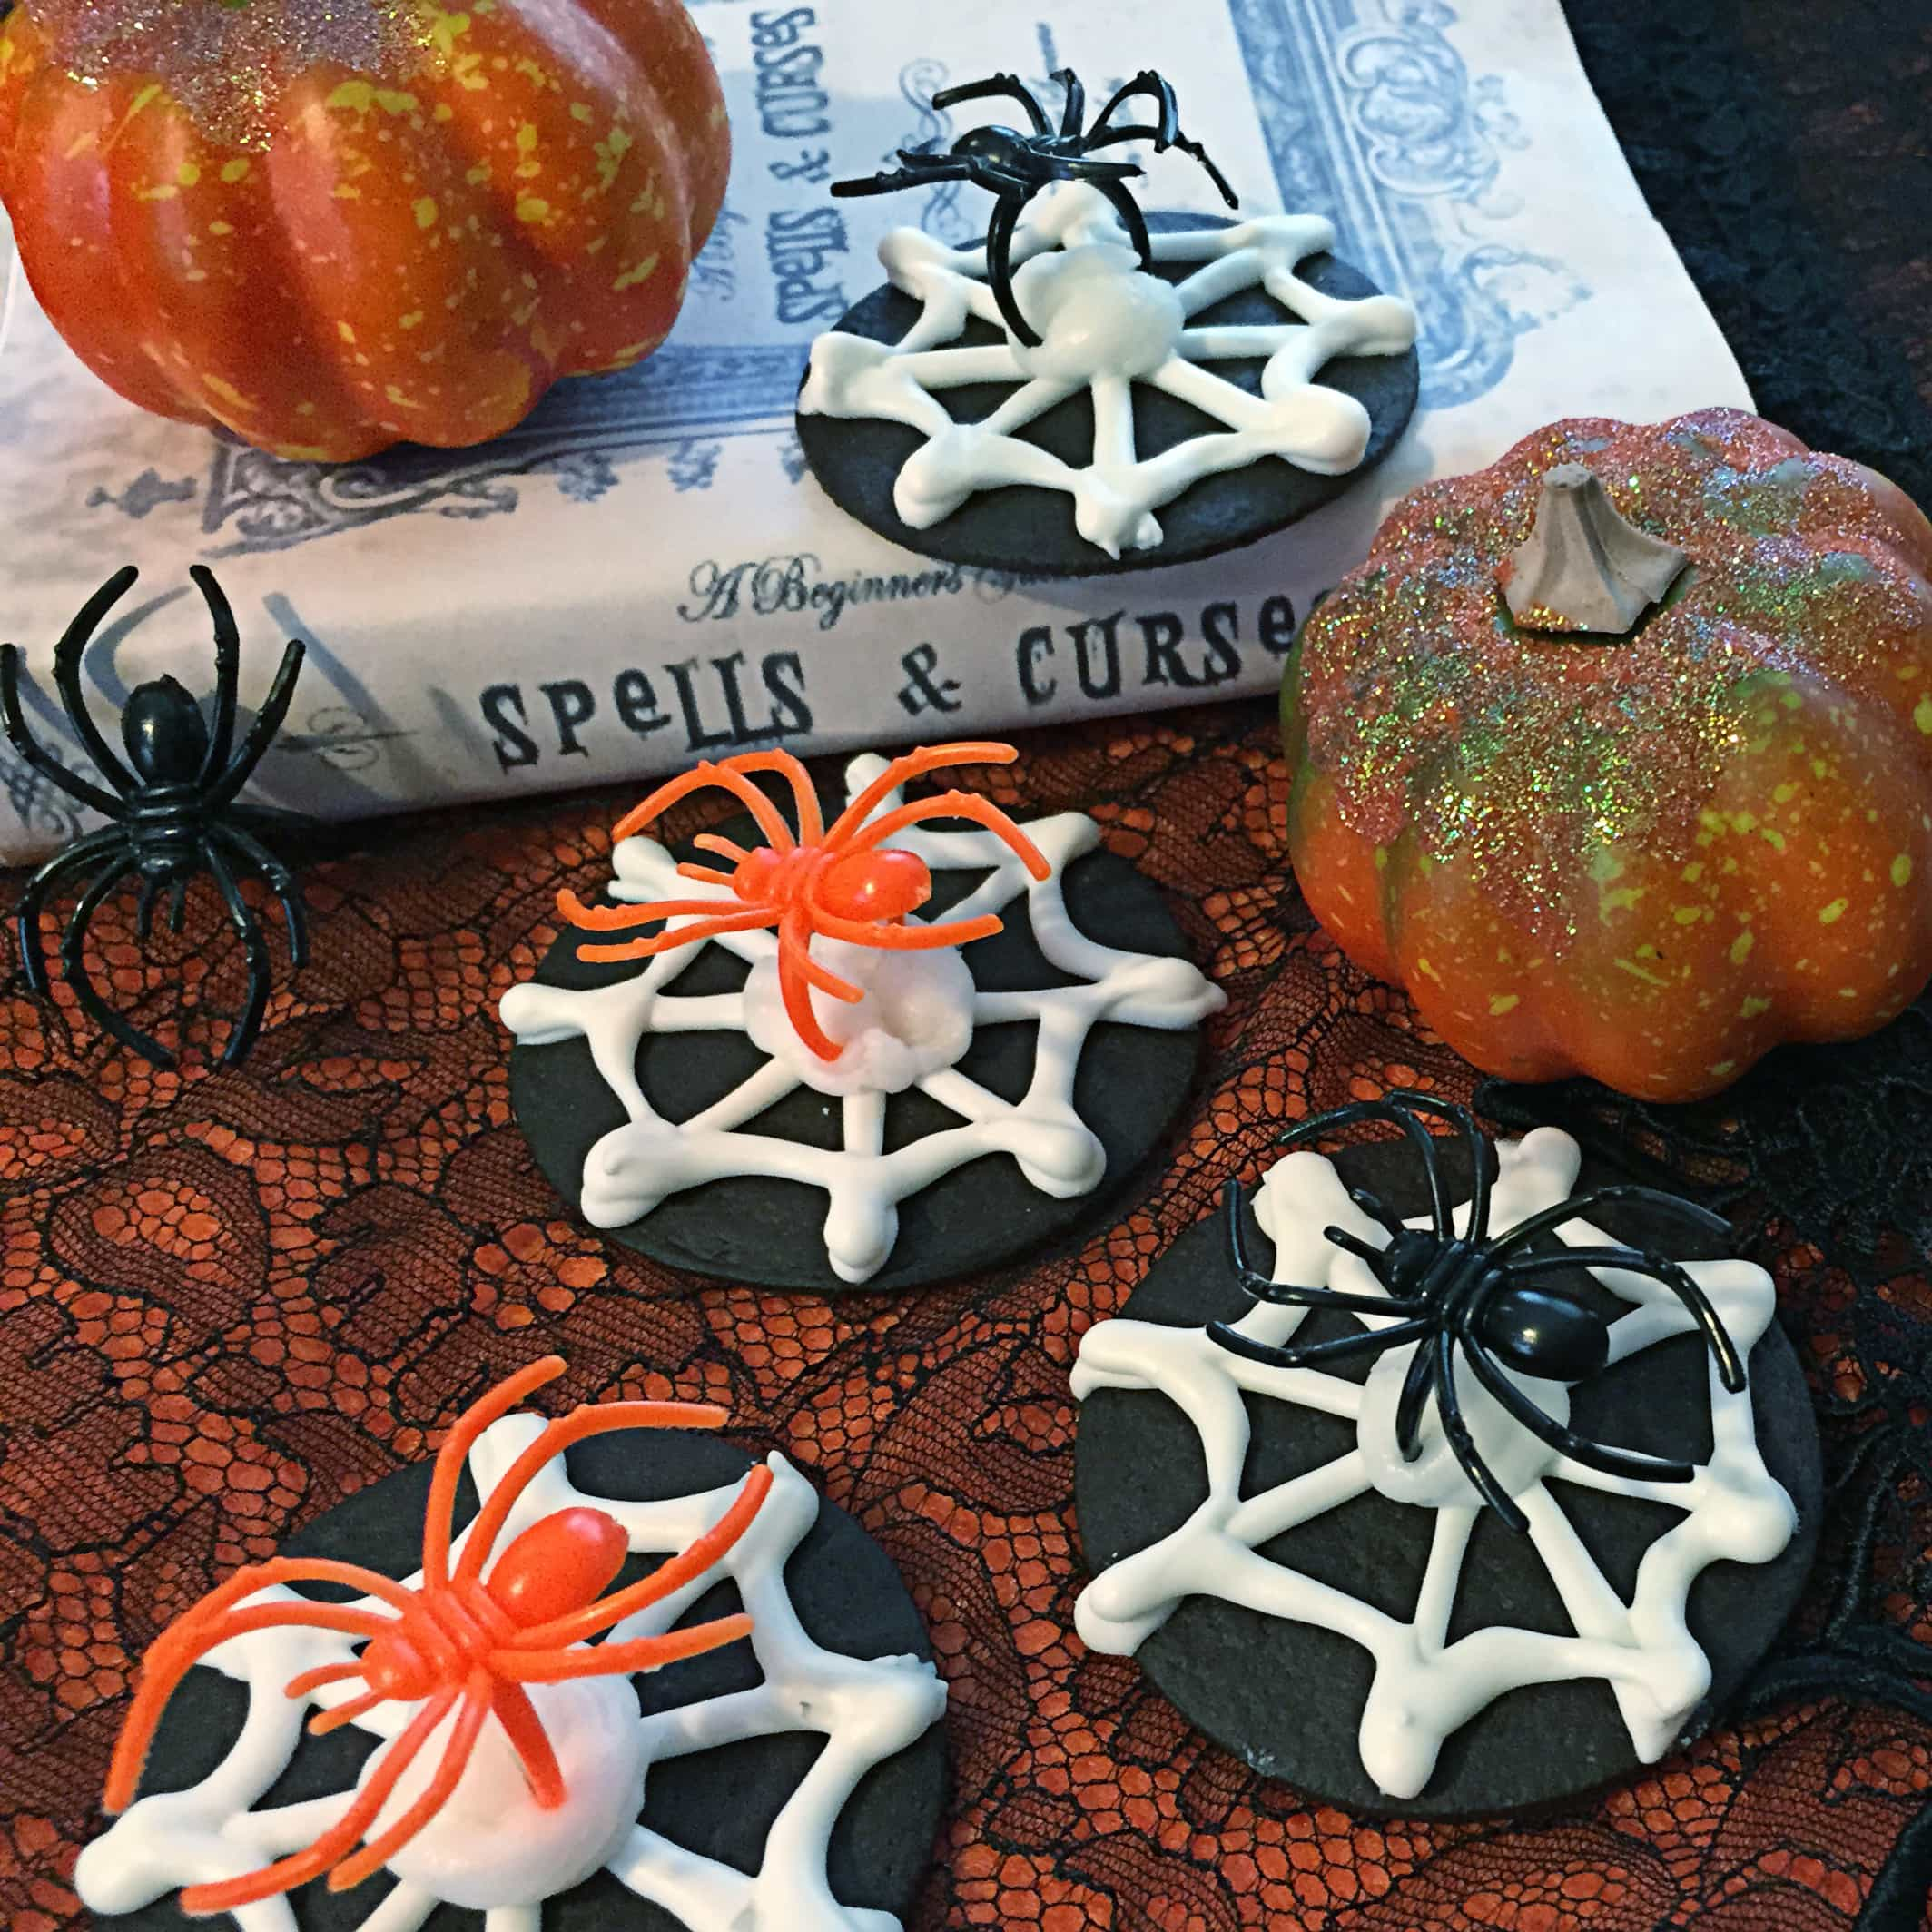 Halloween cookies that look like spider webs with plastic spider rings on them sit on a tabletop decorated for Halloweenl.